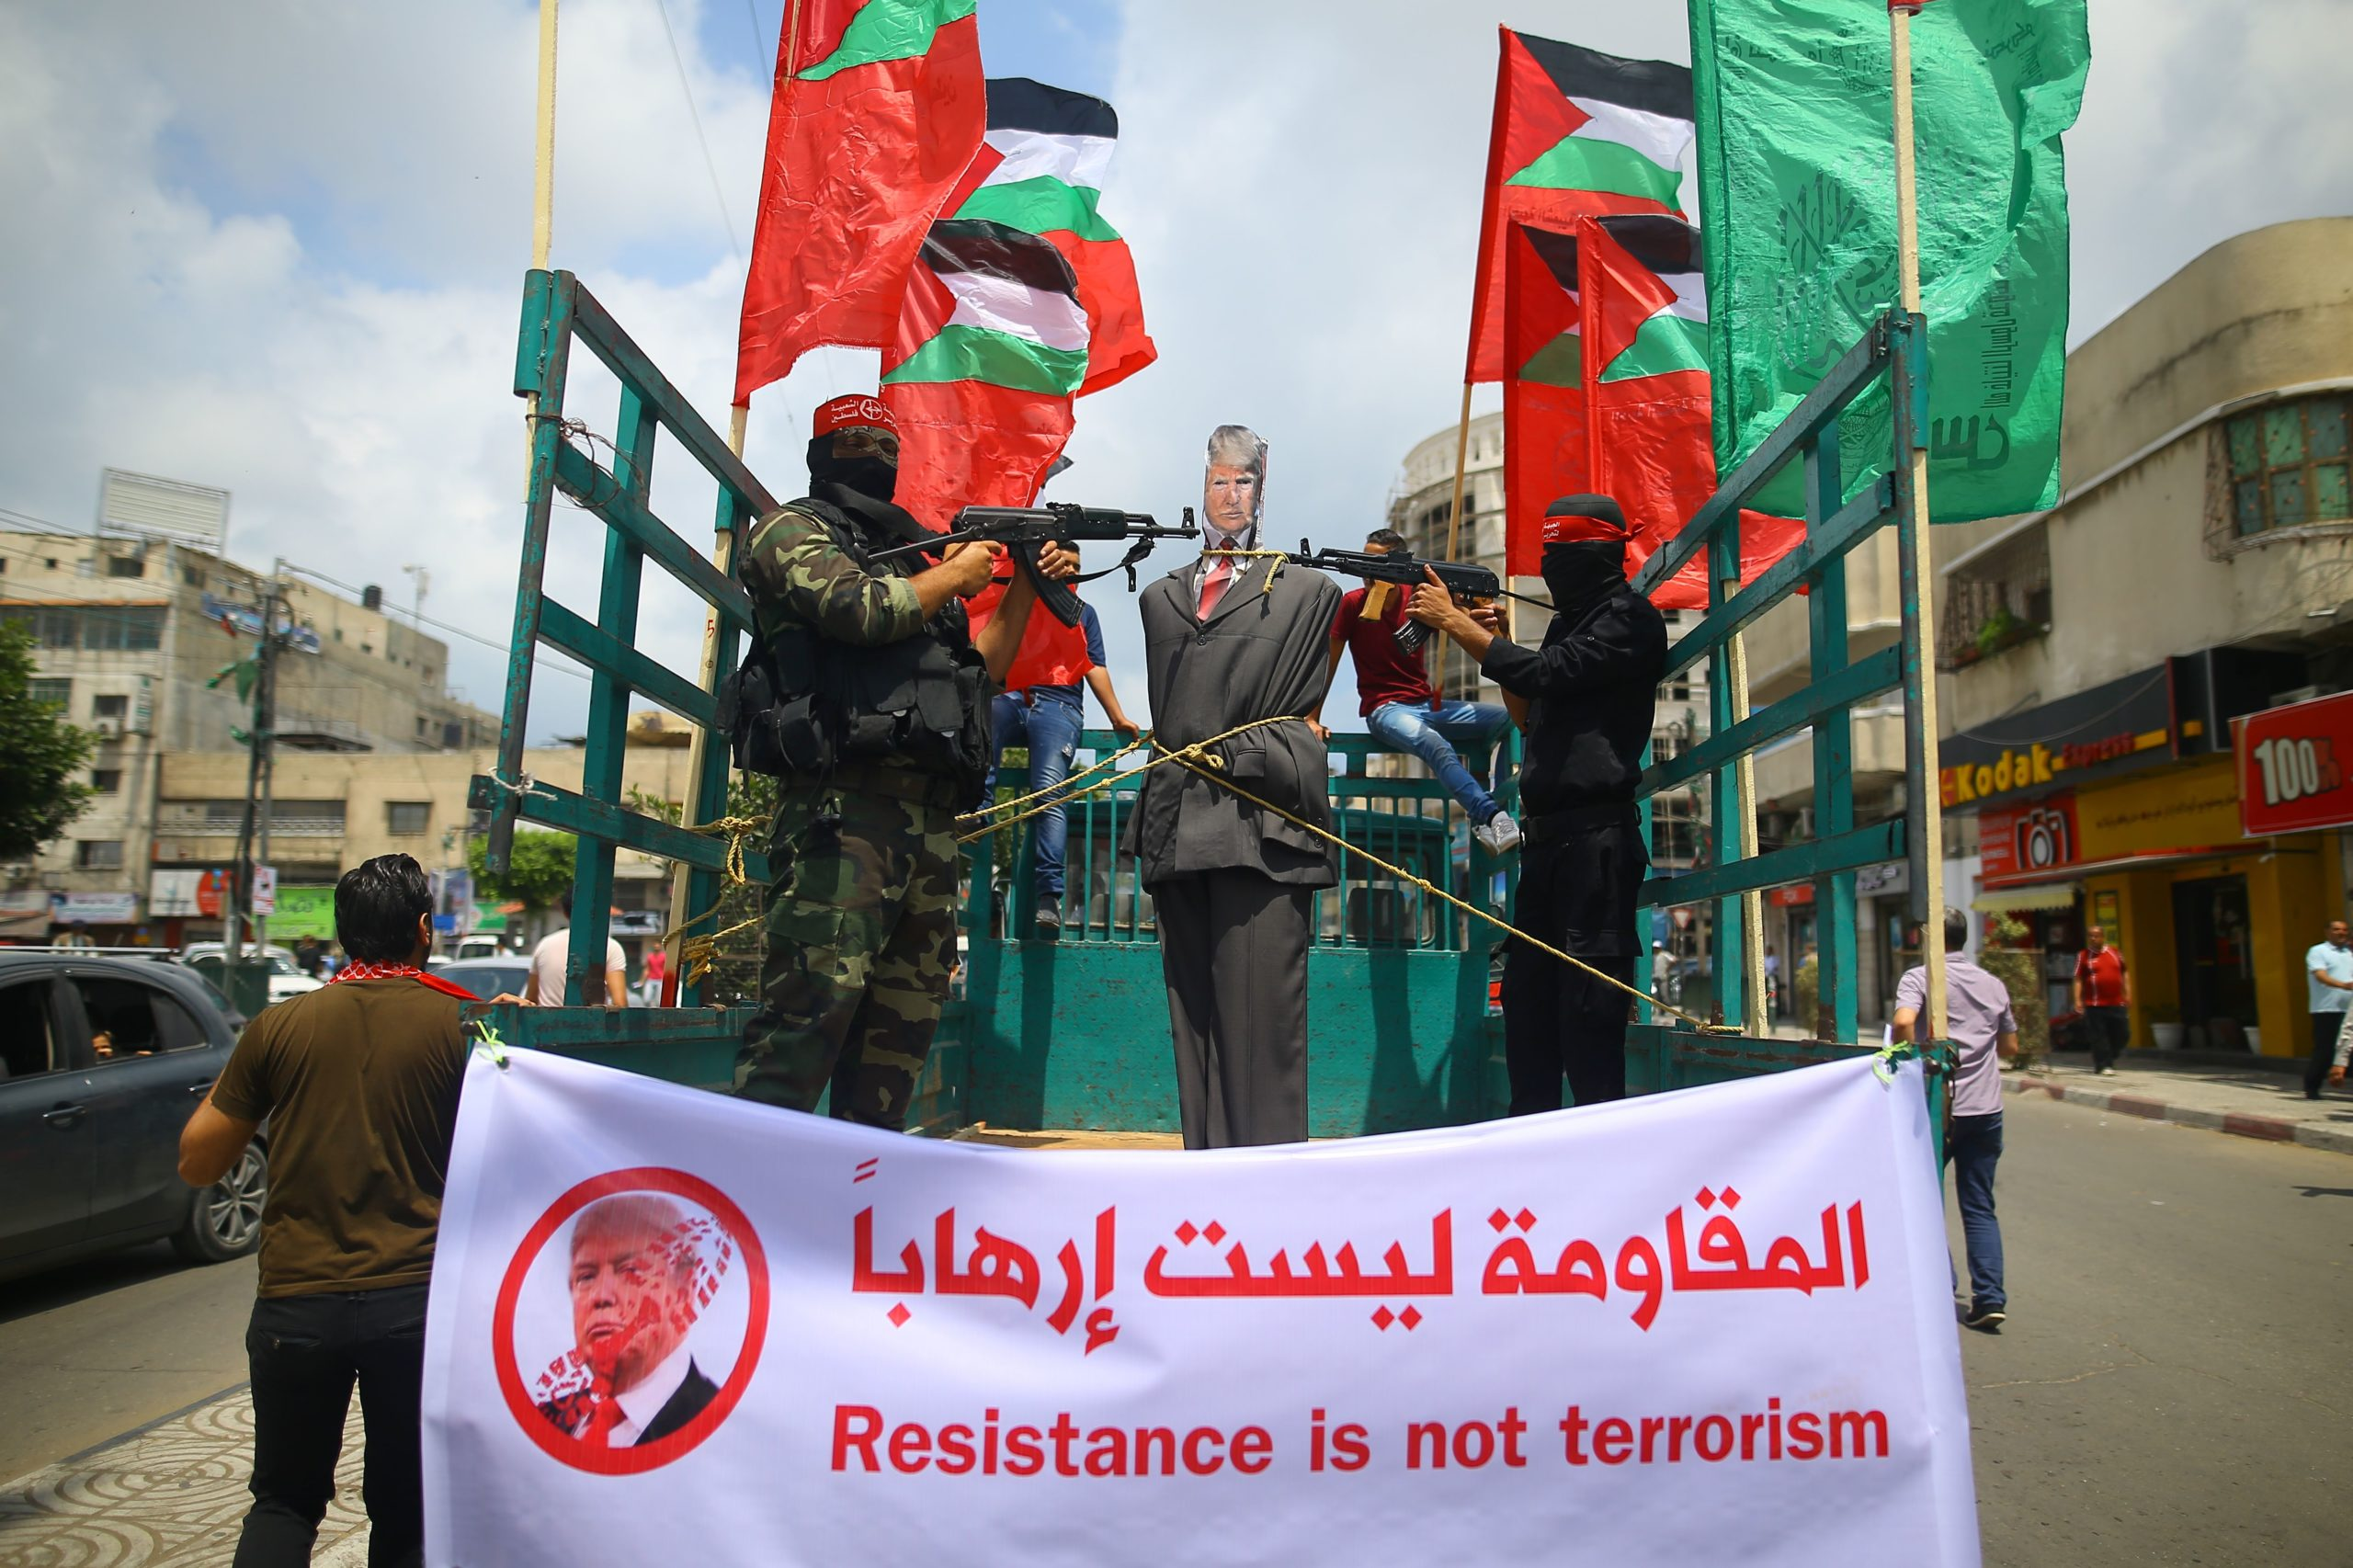 Palestinian militants from the Popular Front for the Liberation of Palestine (PFLP) aim their weapons at an effigy depicting US President Donald Trump as they ride a truck during a protest in Gaza City, on May 23, 2017. / AFP PHOTO / MOHAMMED ABED (Photo credit should read MOHAMMED ABED/AFP via Getty Images)